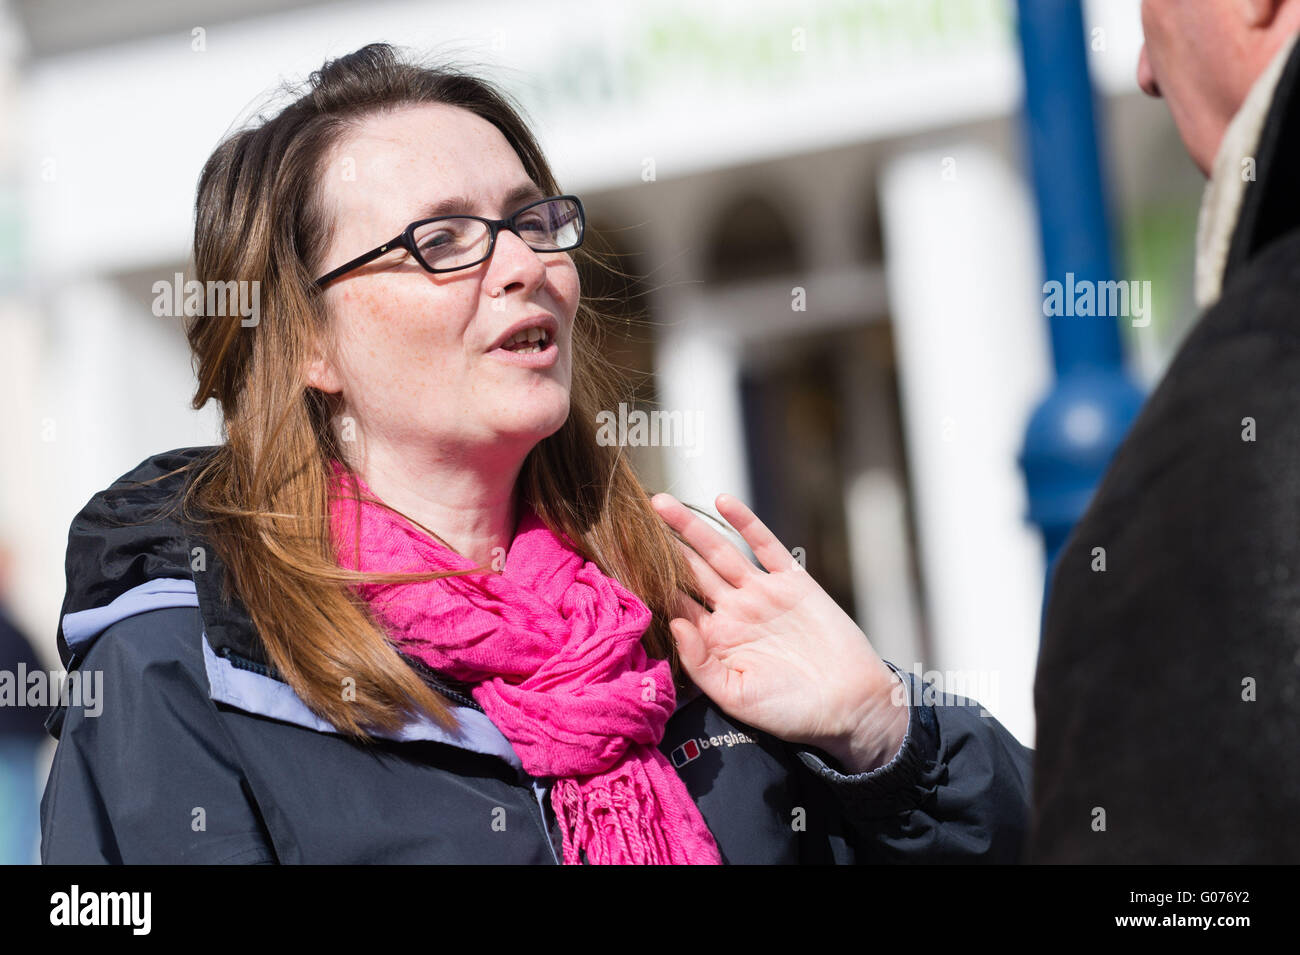 Aberystwyth Wales UK, Saturday 30 April 2016  Welsh politics: Leader of the Welsh Liberal Democrats party, Kirsty - Stock Image